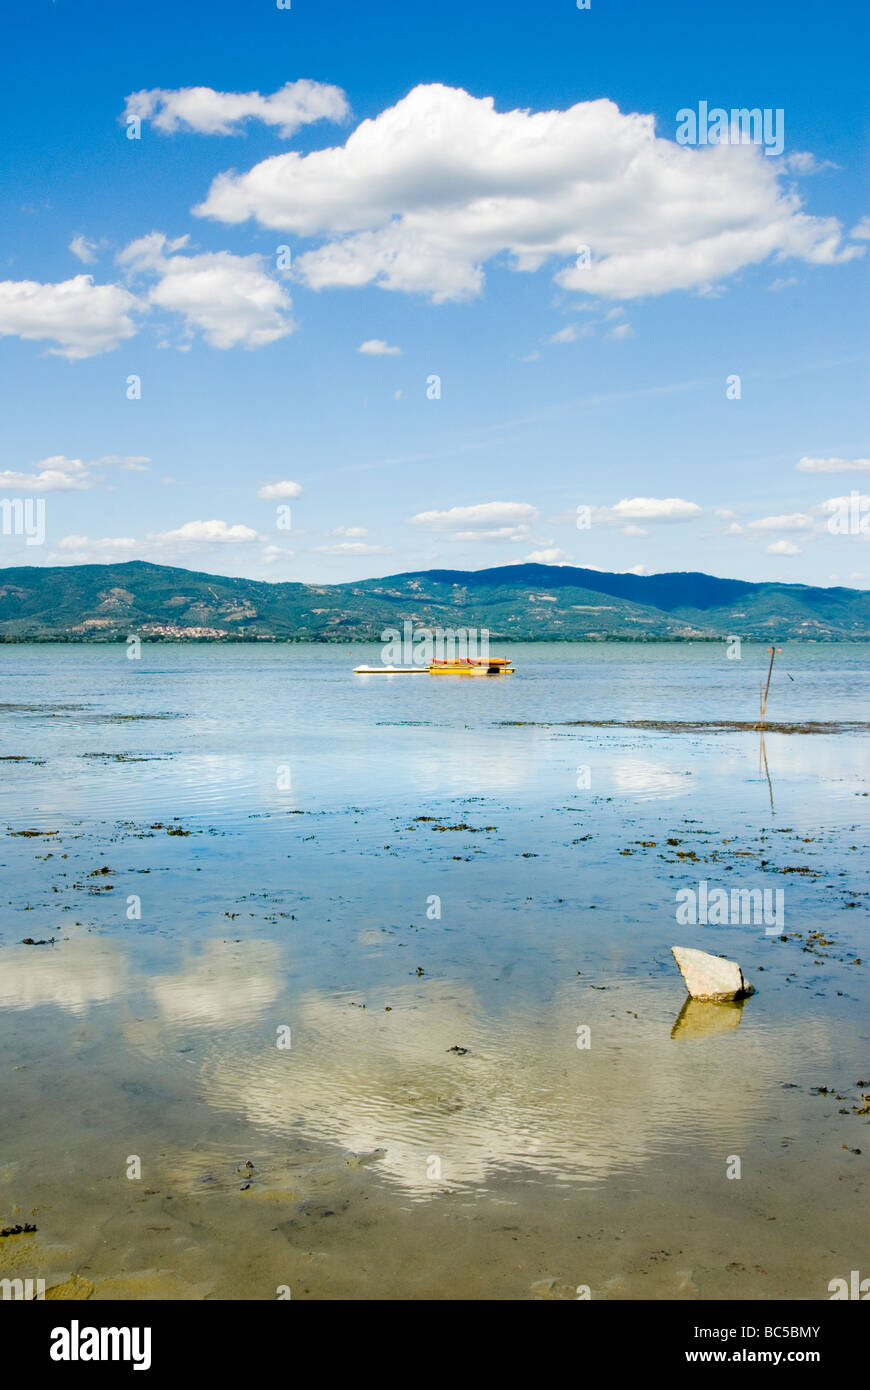 Mirrored surface of Lago Trasimeno the main lake in Umbria Stock Photo